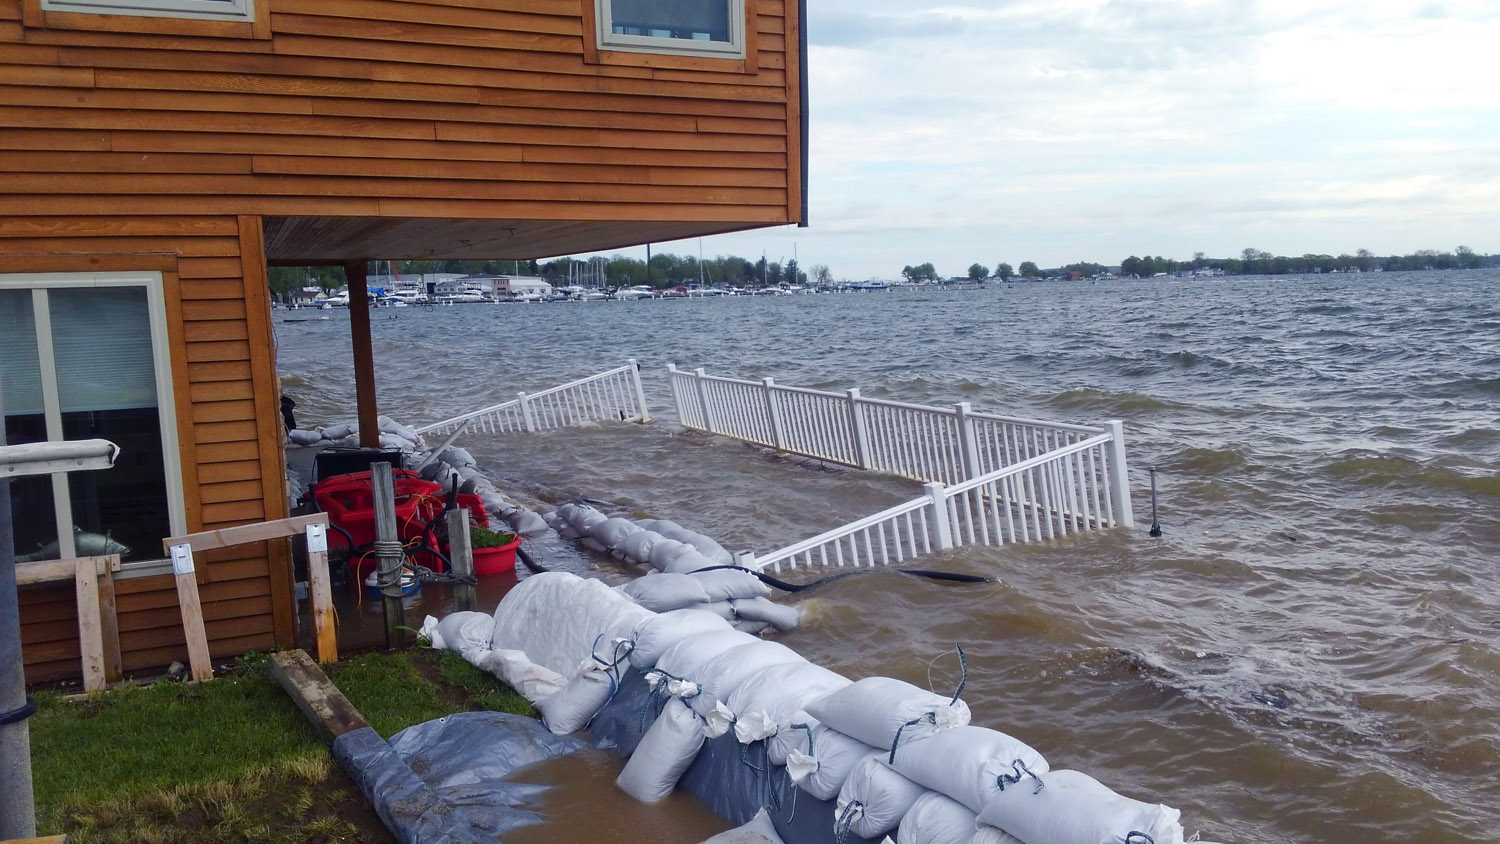 Flooding along Lake Ontario in 2017. (Photo: Coastal Flooding Survey Project, Cornell University/New York Sea Grant)